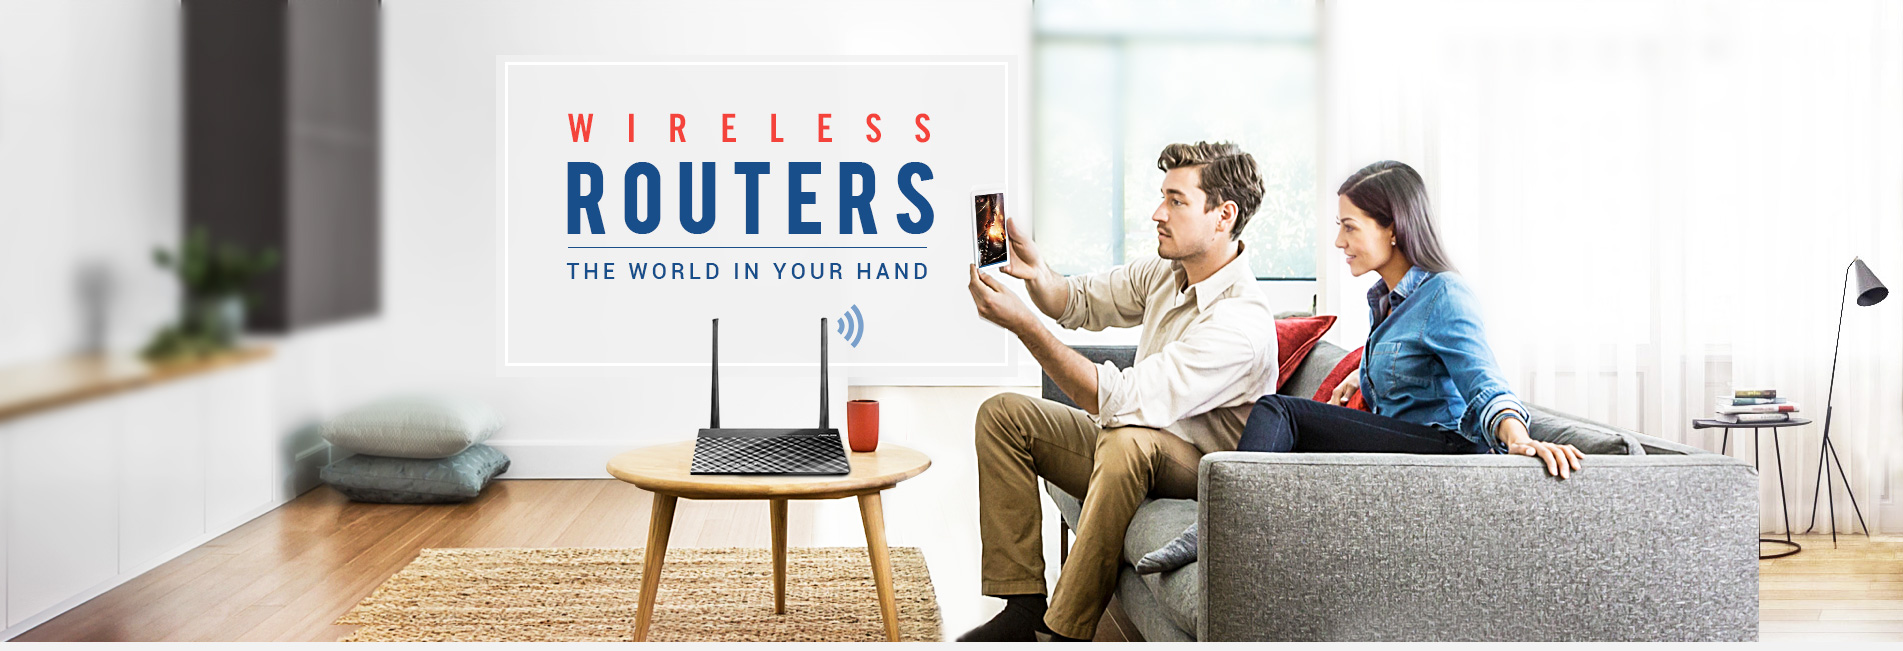 Up to 50 % off On Wifi Router And Gaming Gear On Gearbest Flash Sale